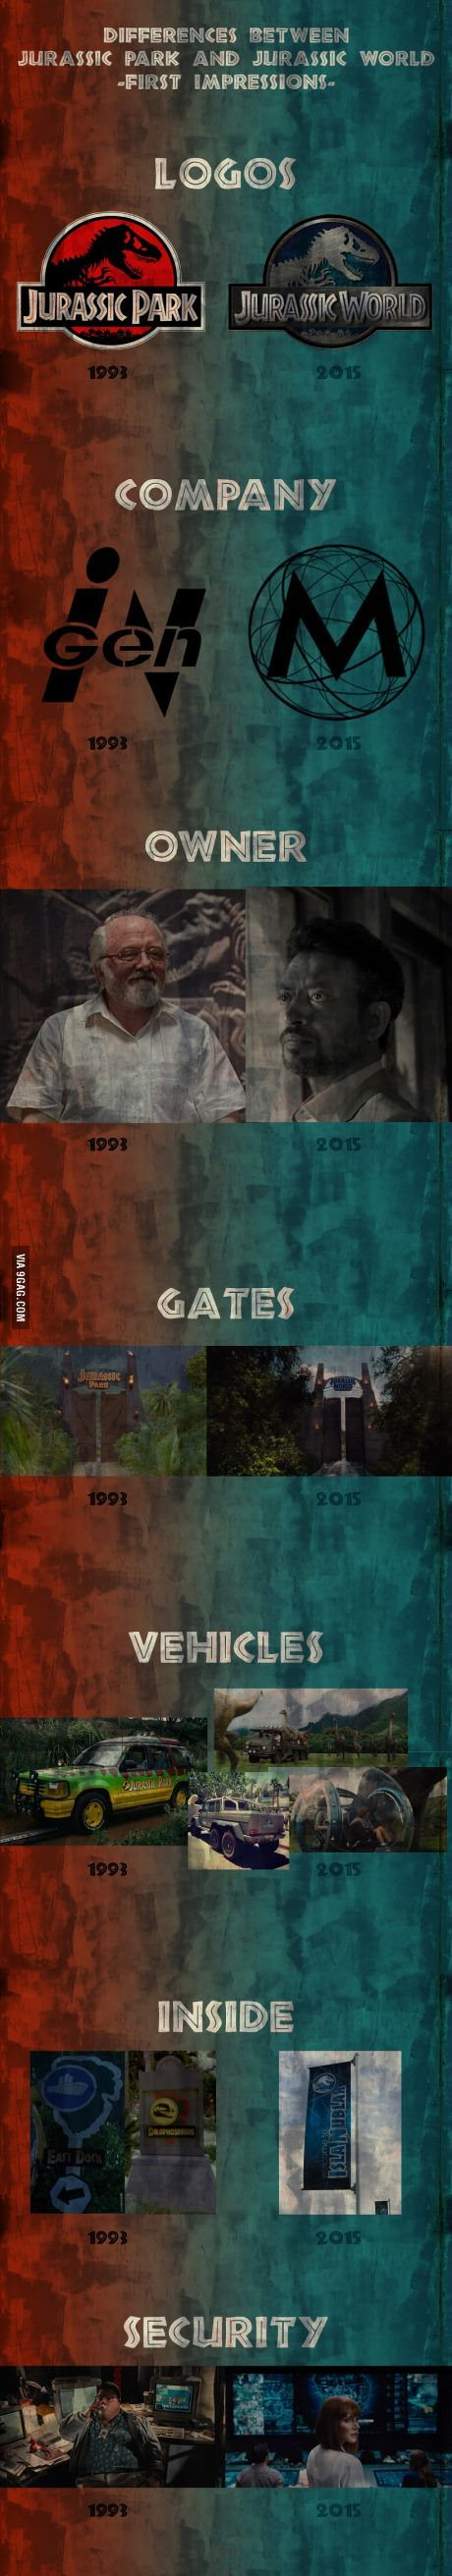 Jurassic Park / Jurassic World Haha the last one